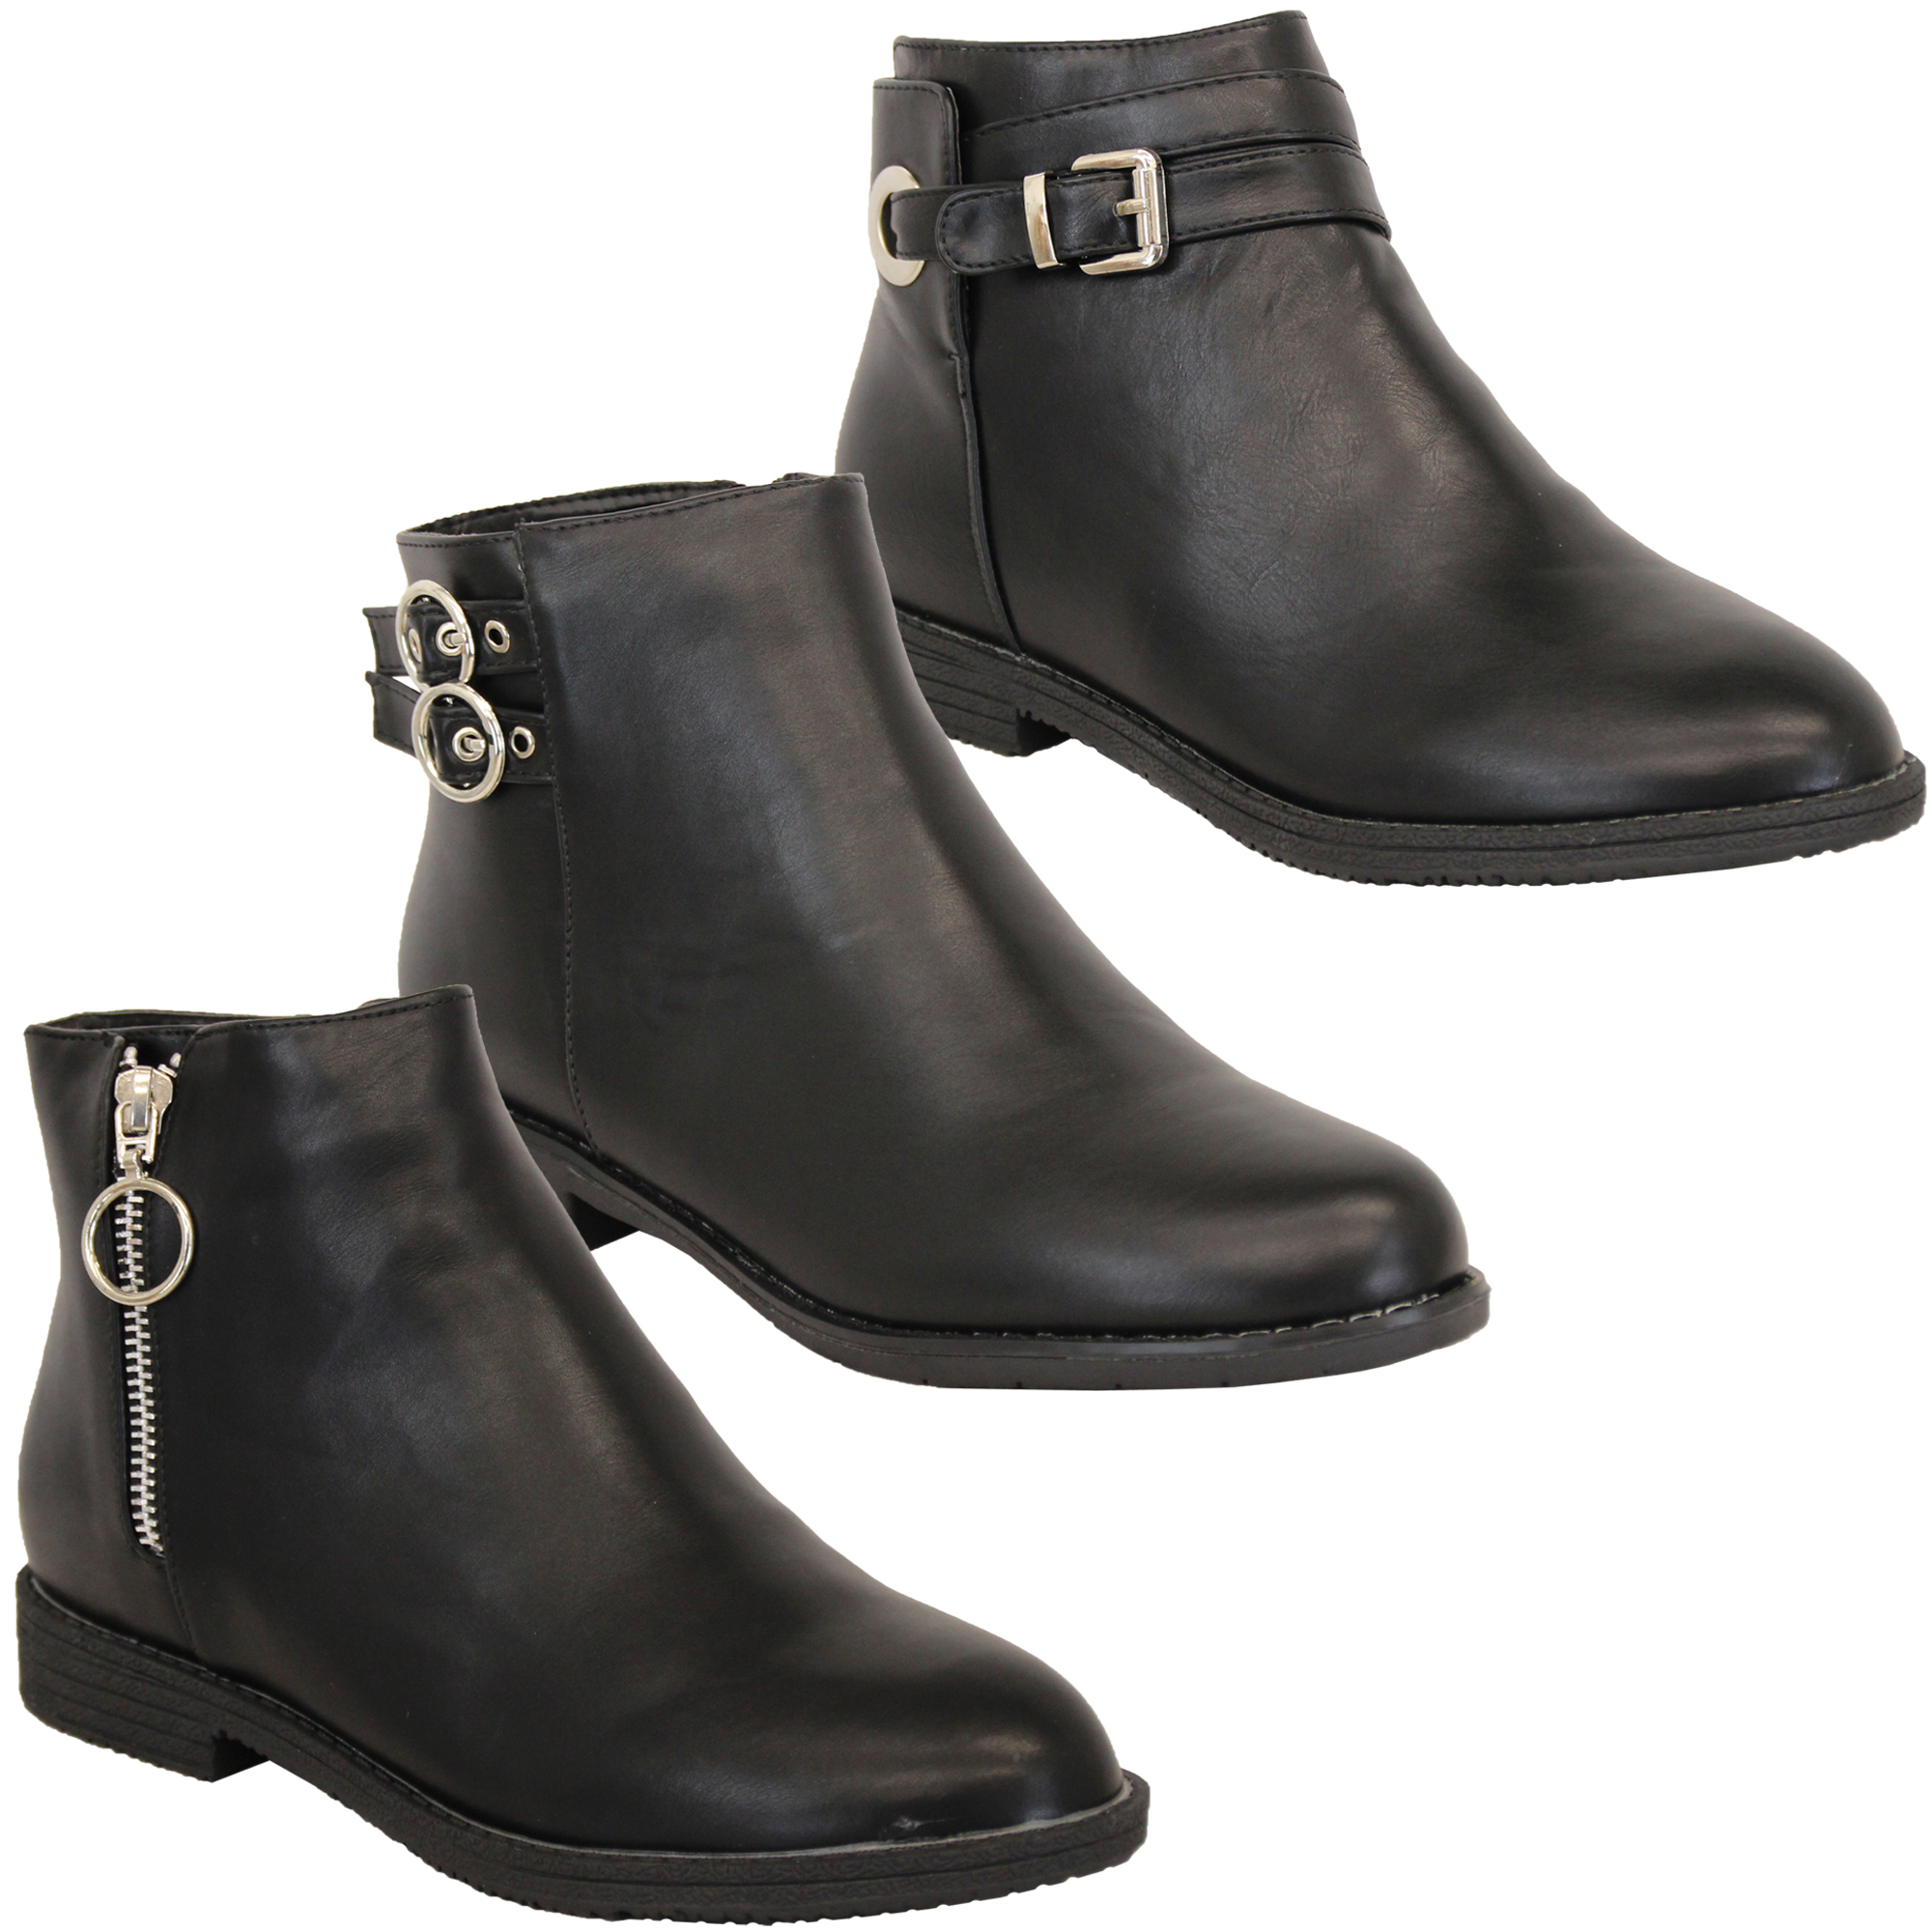 Details about Ladies Chelsea Boots Womens Biker Slip On Ankle Leather Look Shoes Winter New